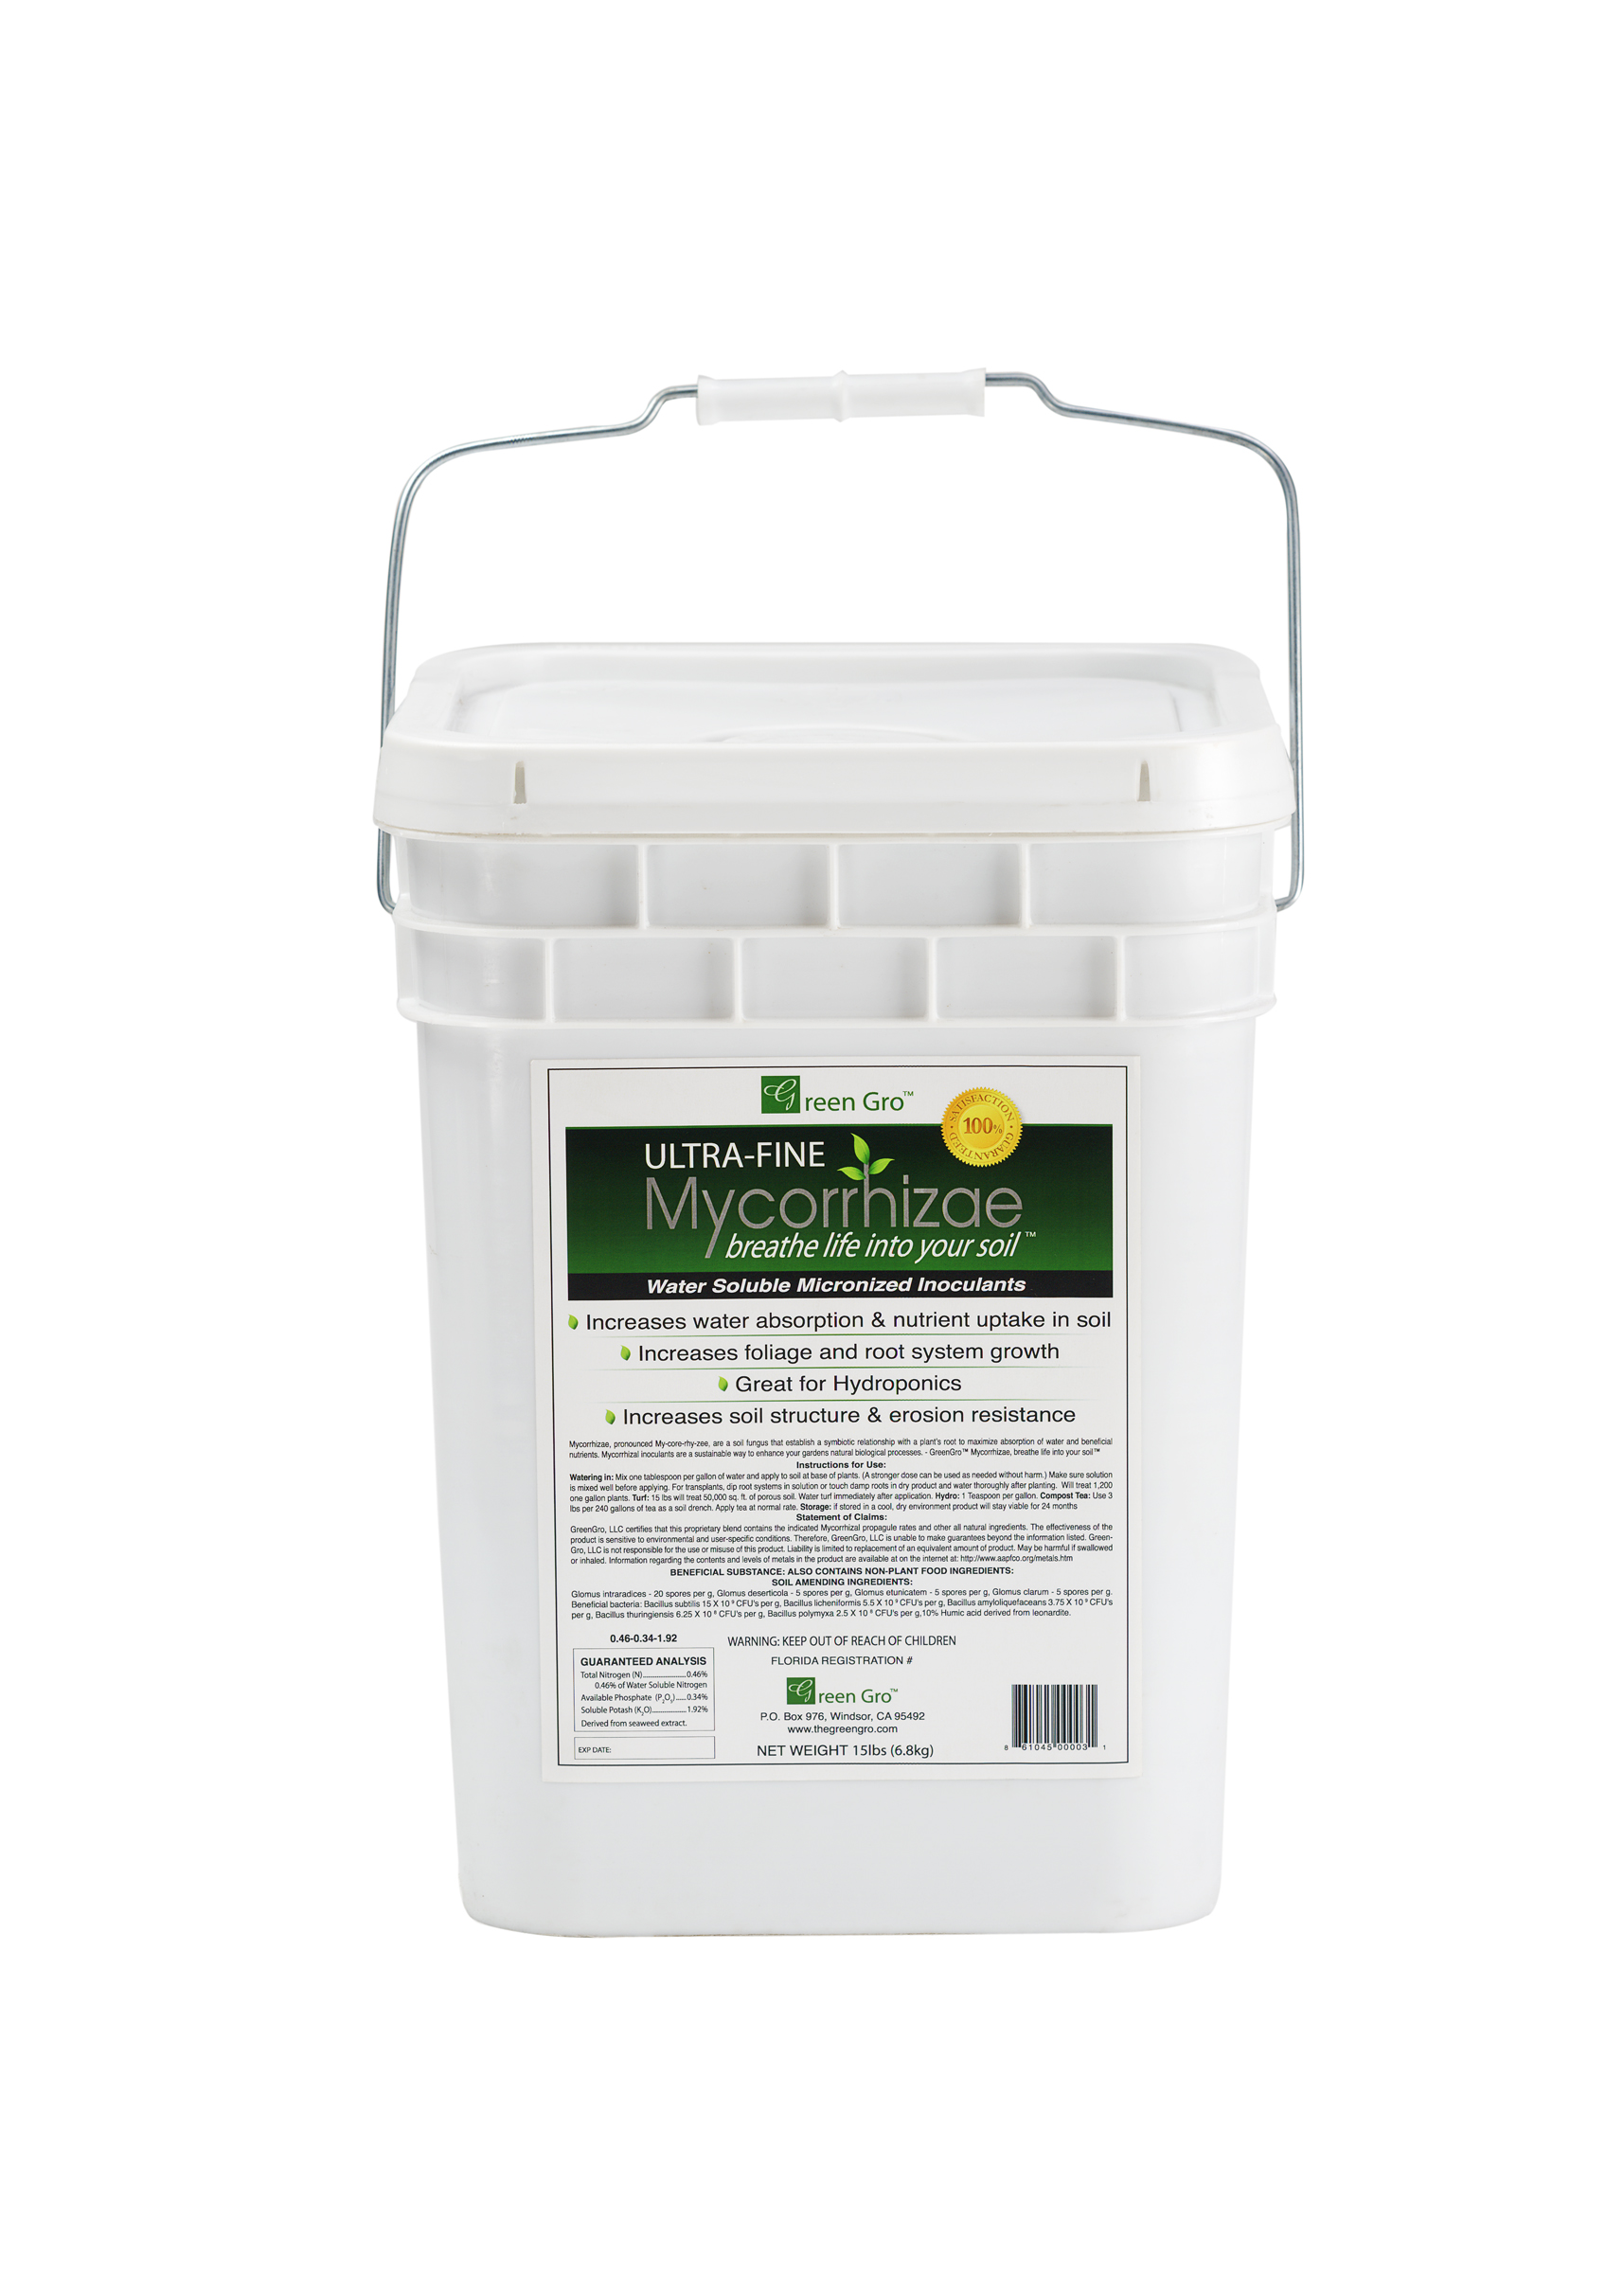 Green Gro Ultrafine Mycorrhizae All-in-One 15 LBS